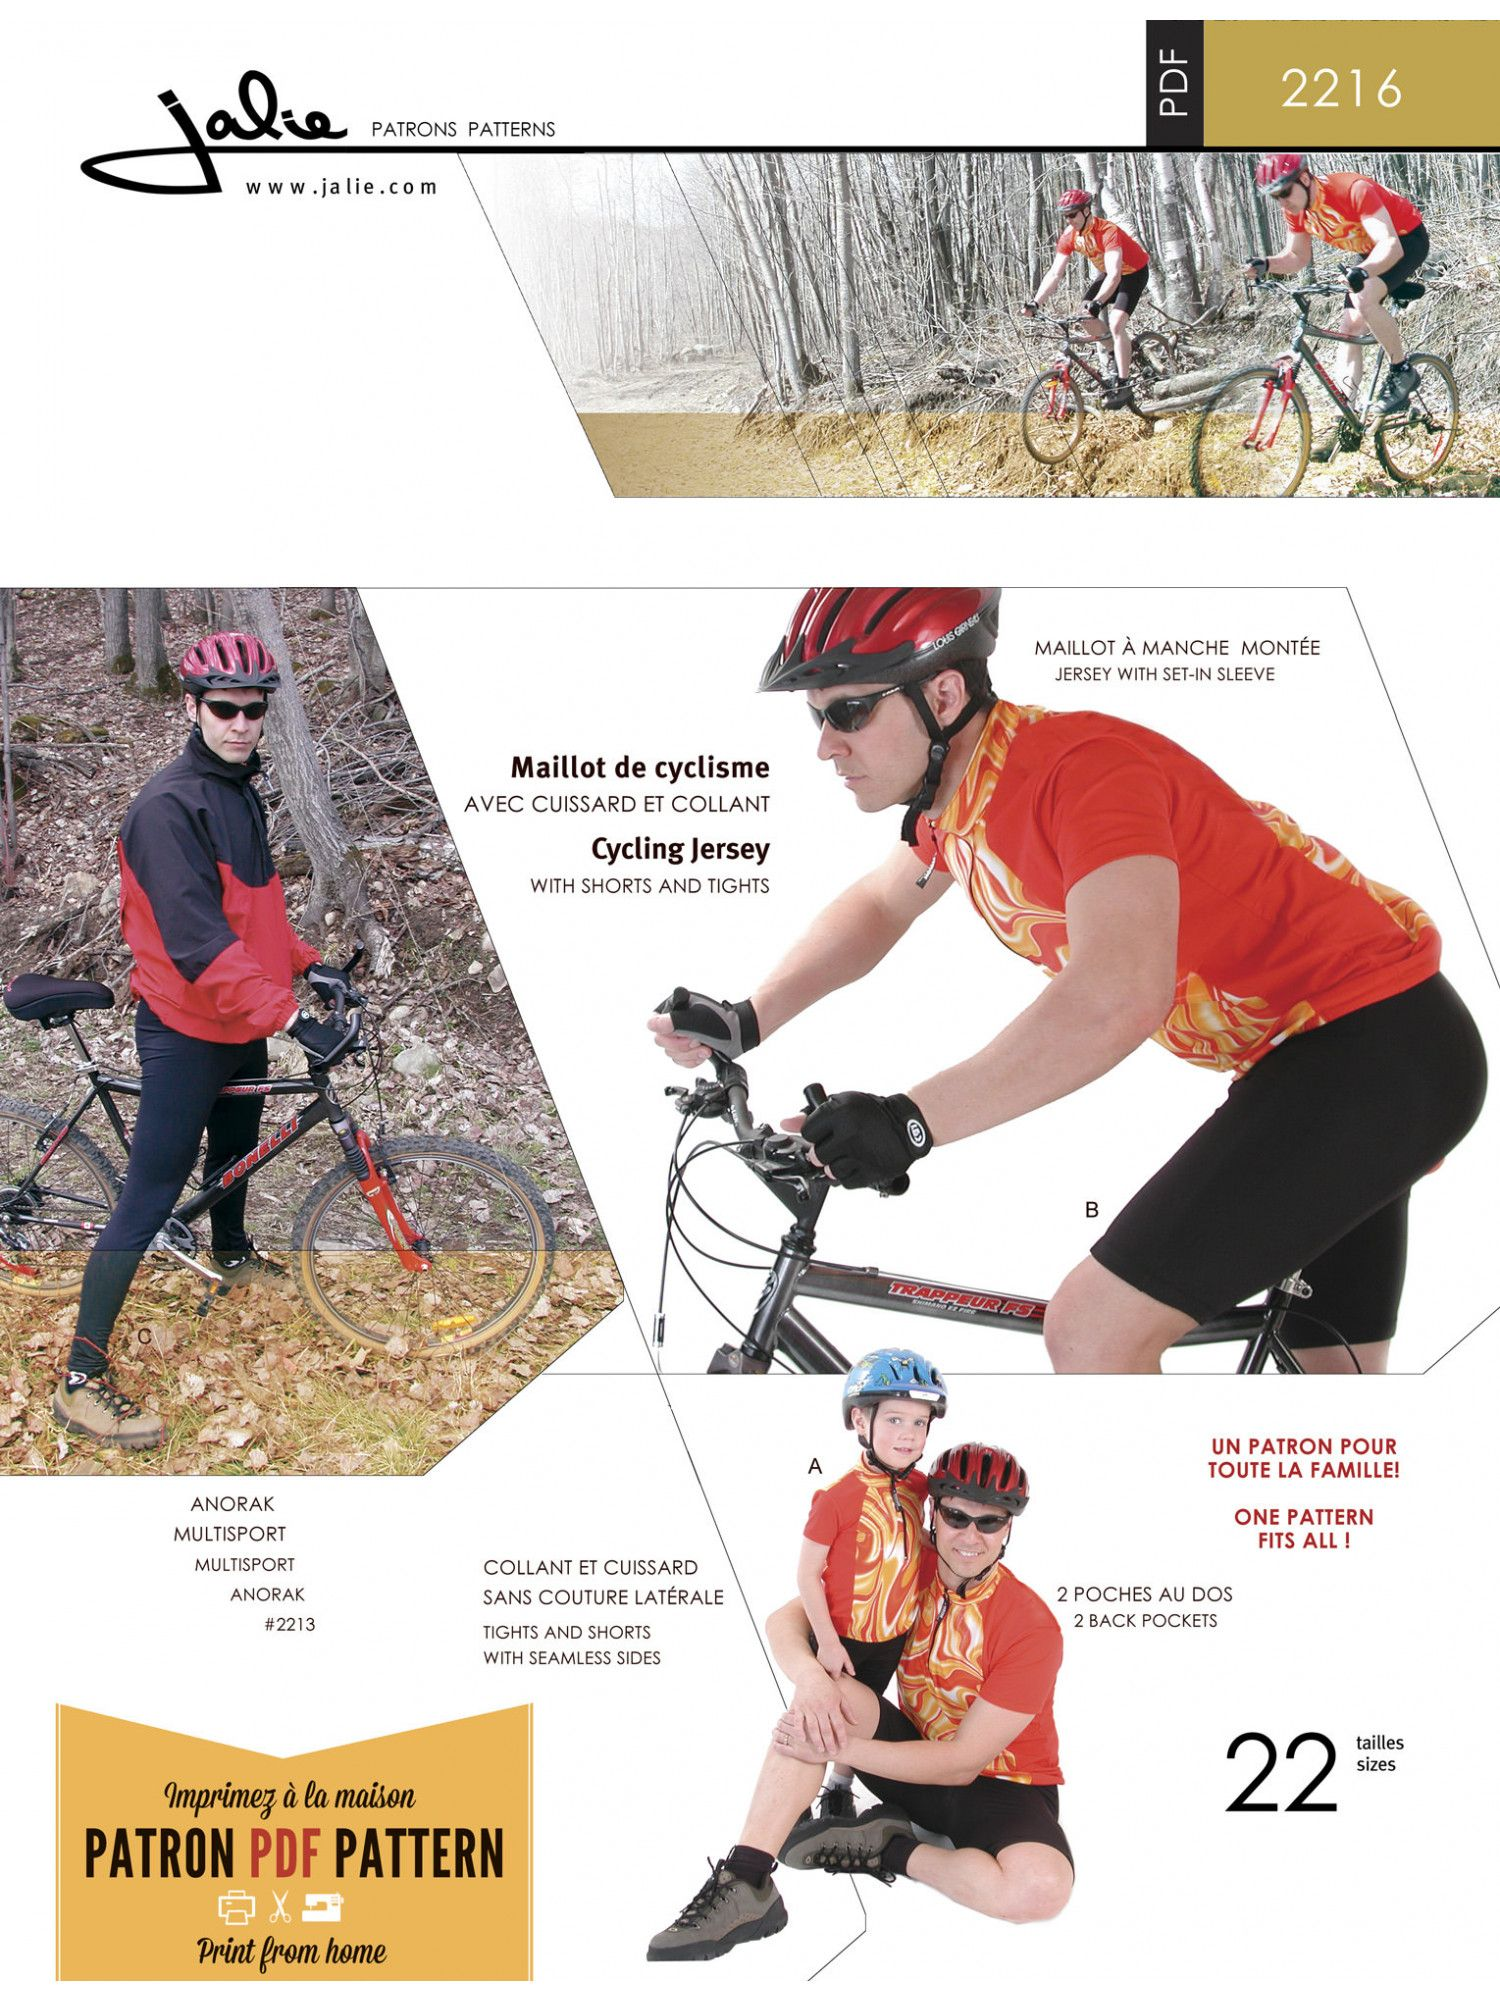 Cycling Jersey, Shorts and Tights | Paid Patterns | Pinterest